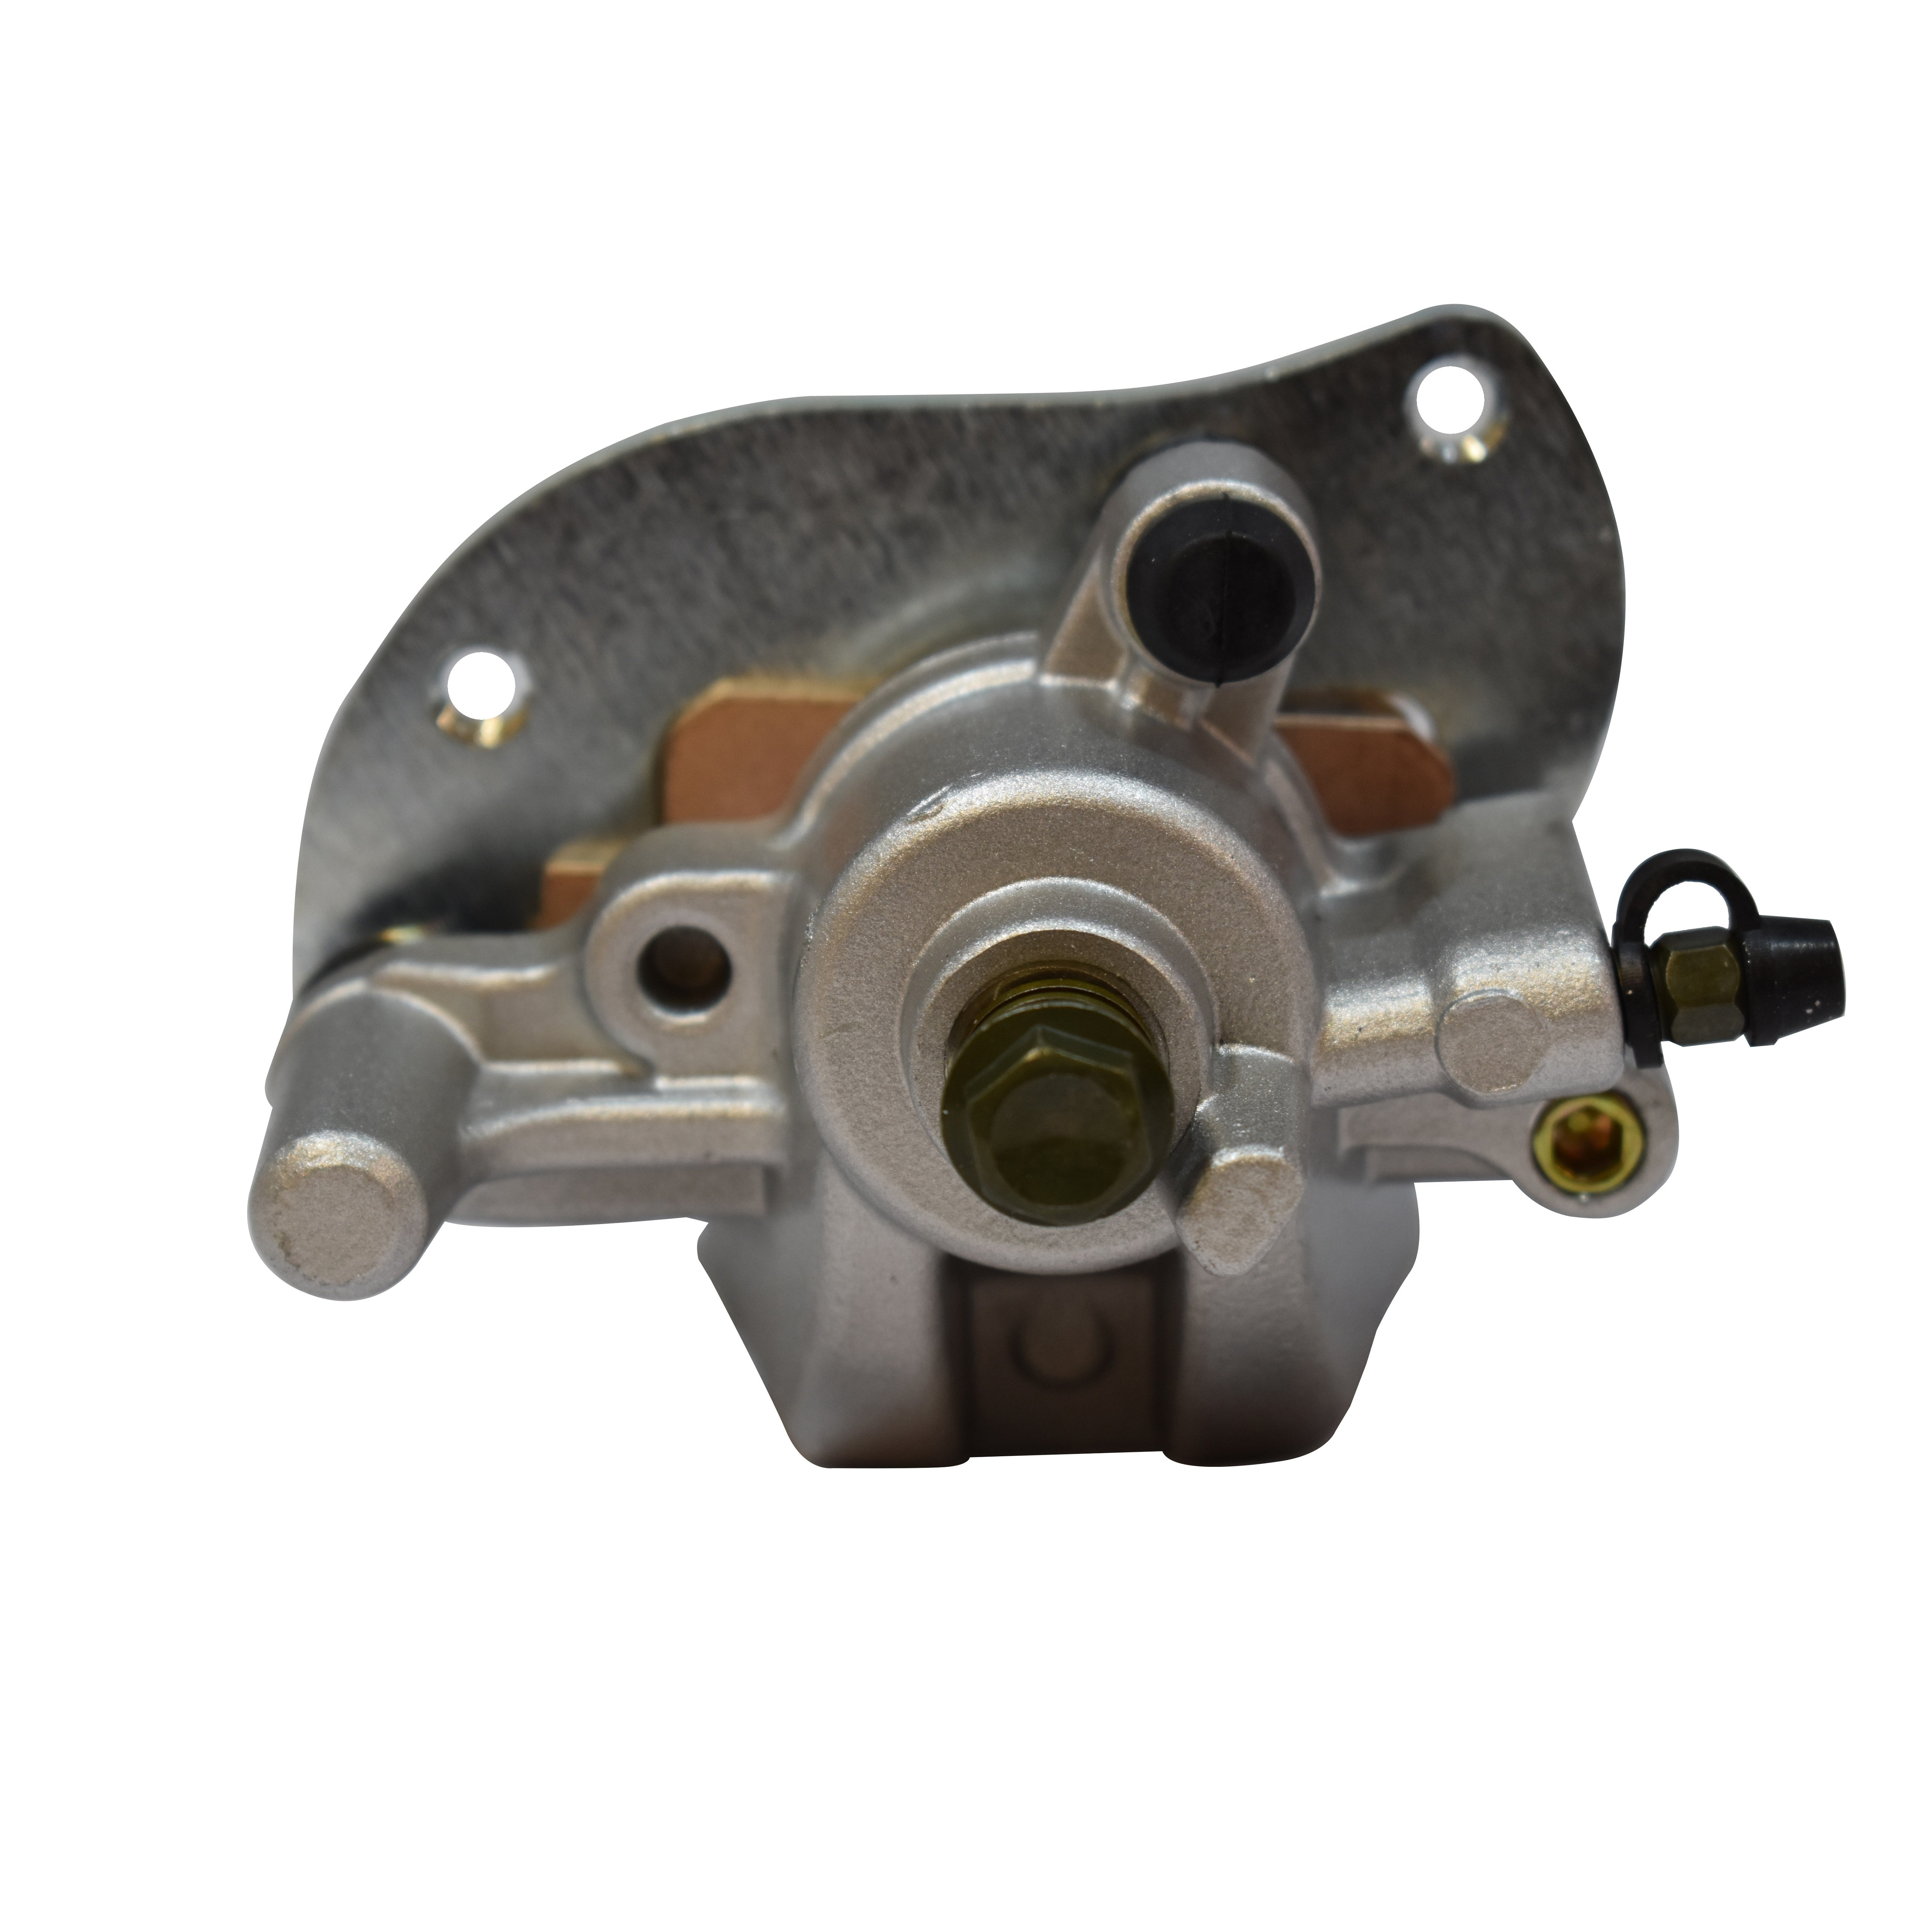 Yamaha 700 Grizzly YFM700 Upper and Lower Ball Joints x4 for 2007-2012